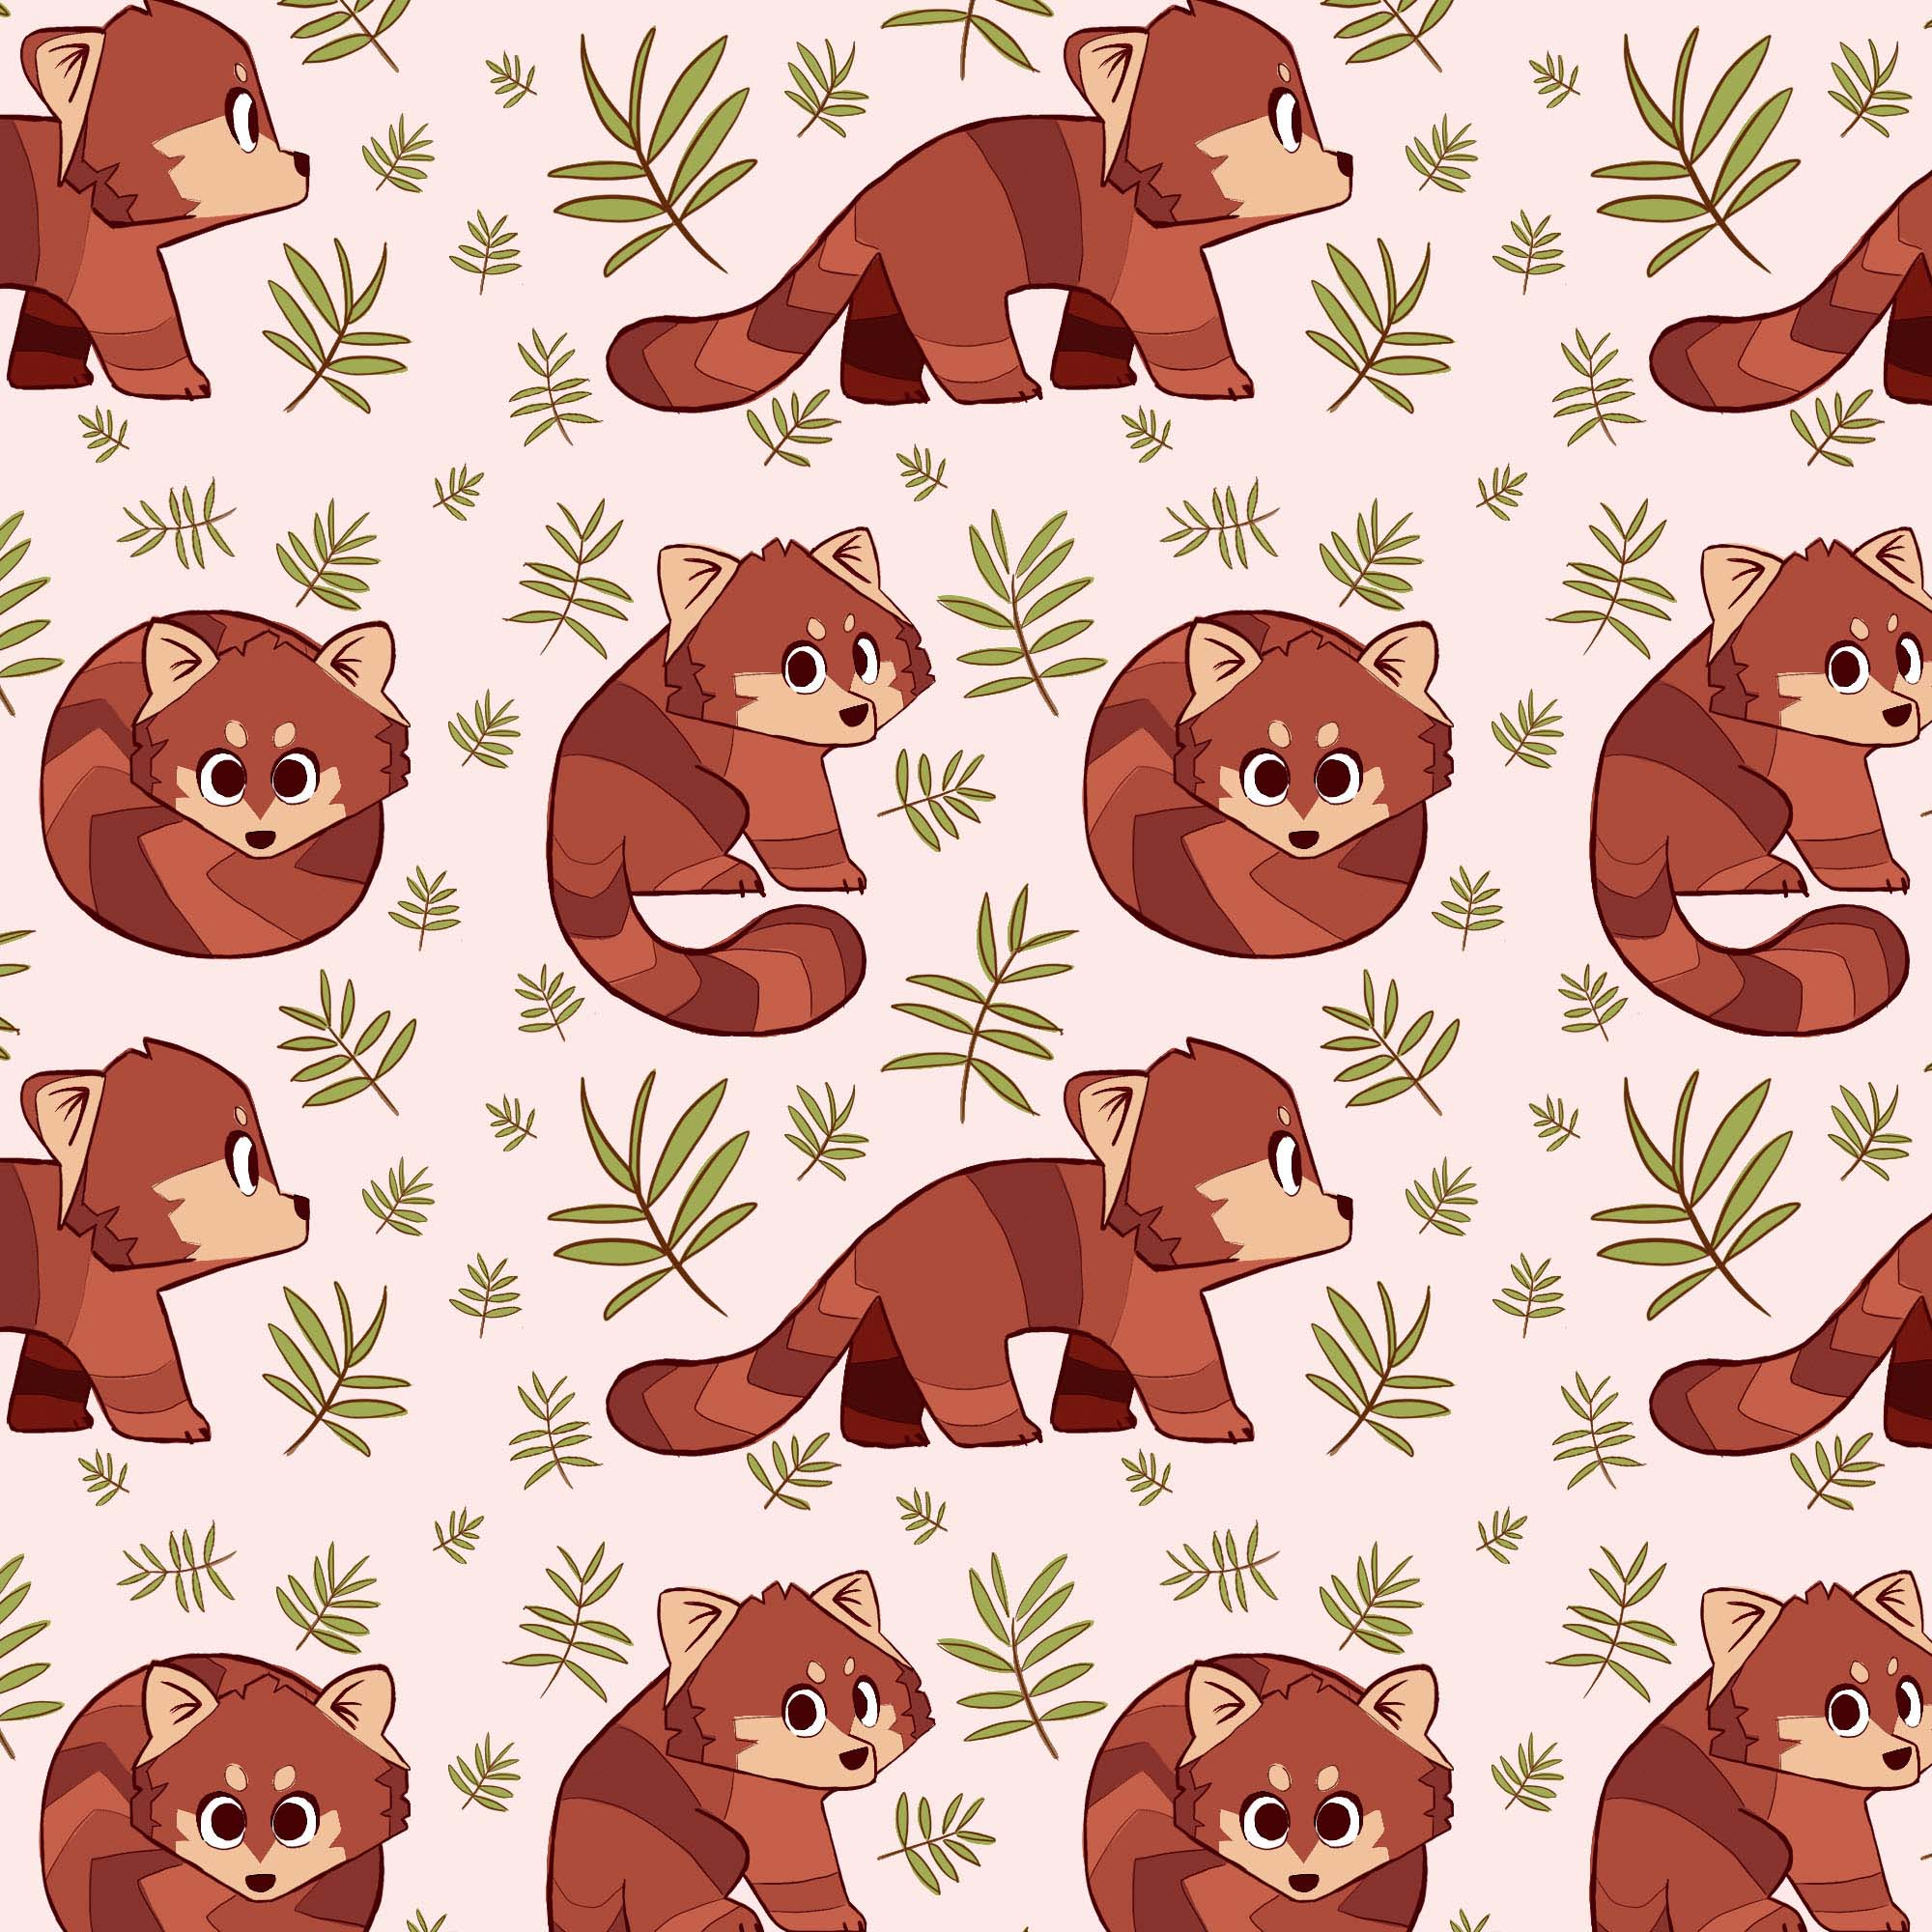 red panda repeat pattern